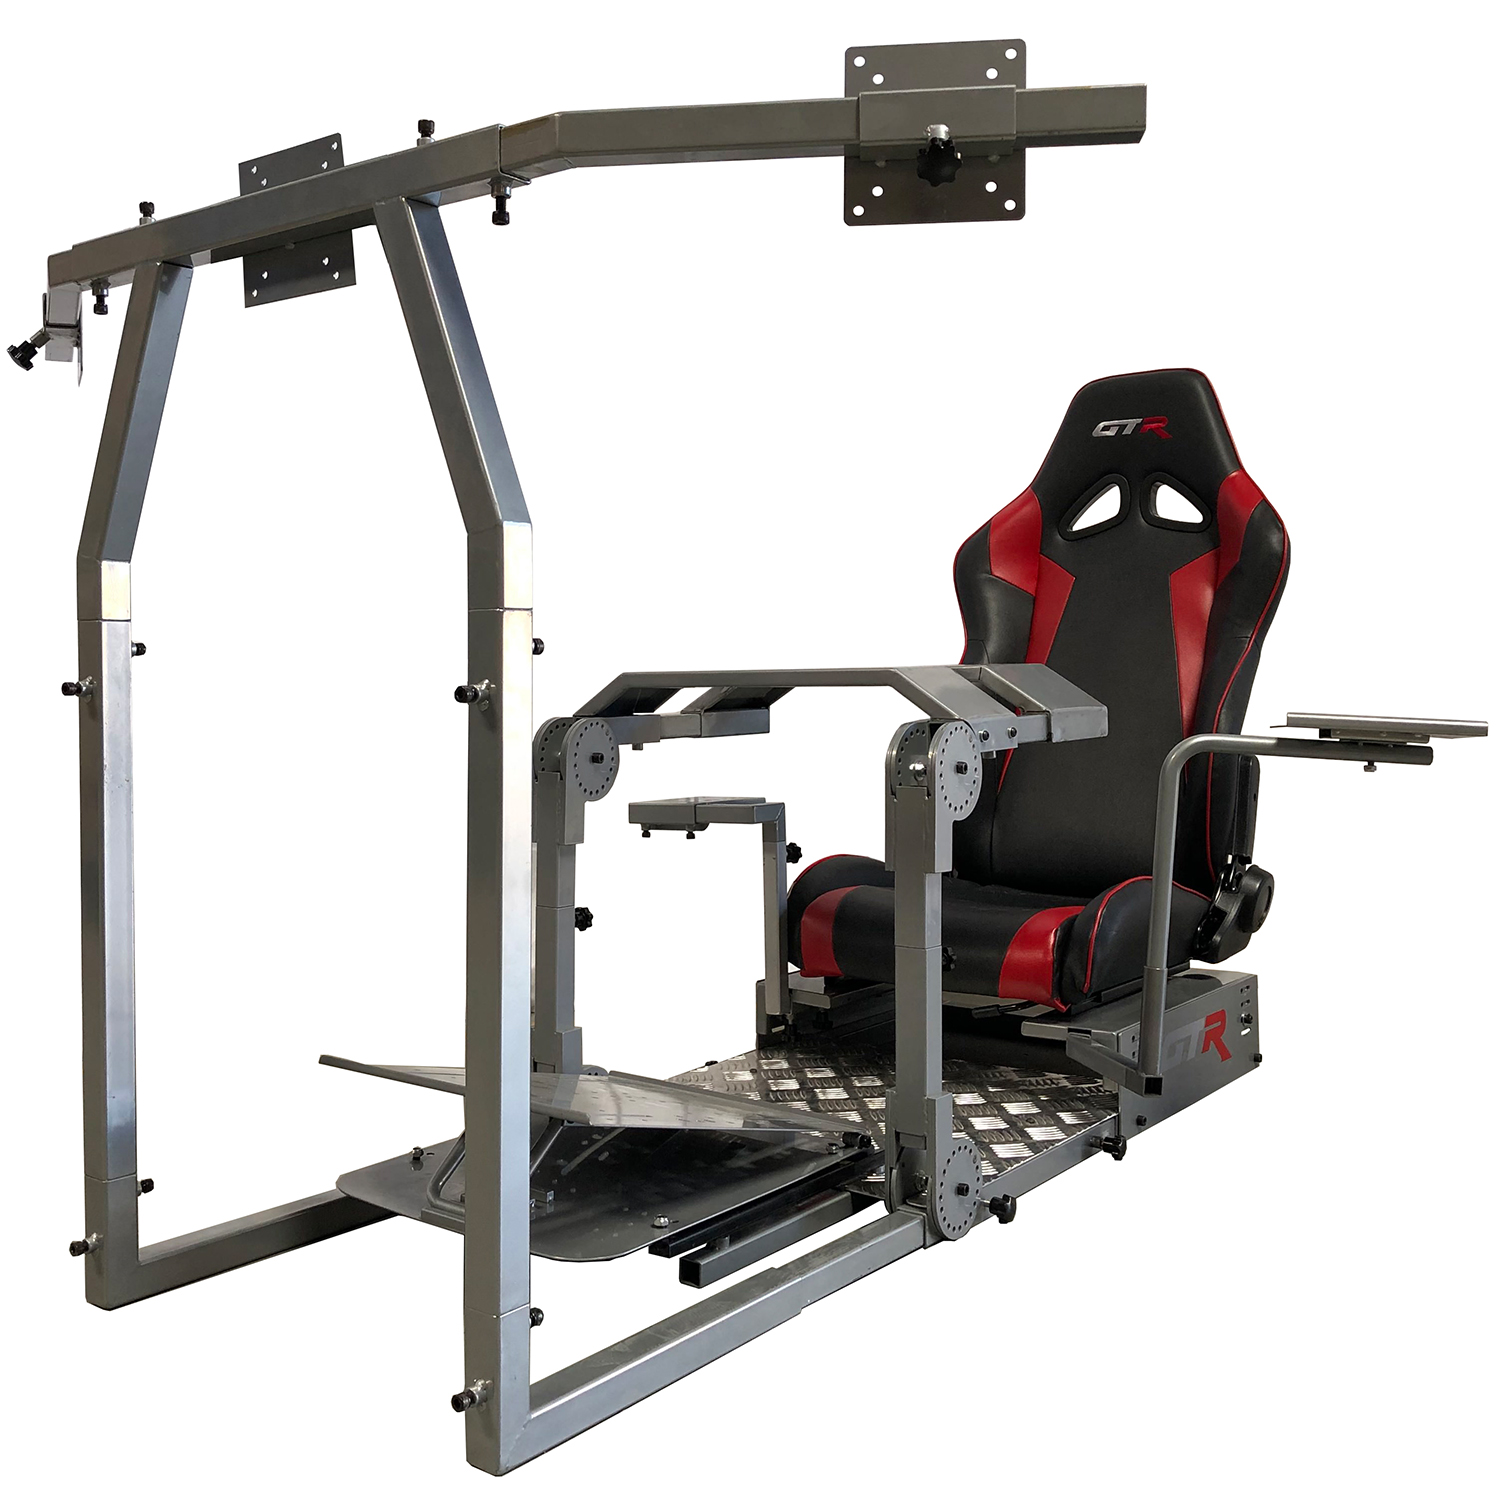 New Gta Pro Simulator The Latest In Sim Racing Seat